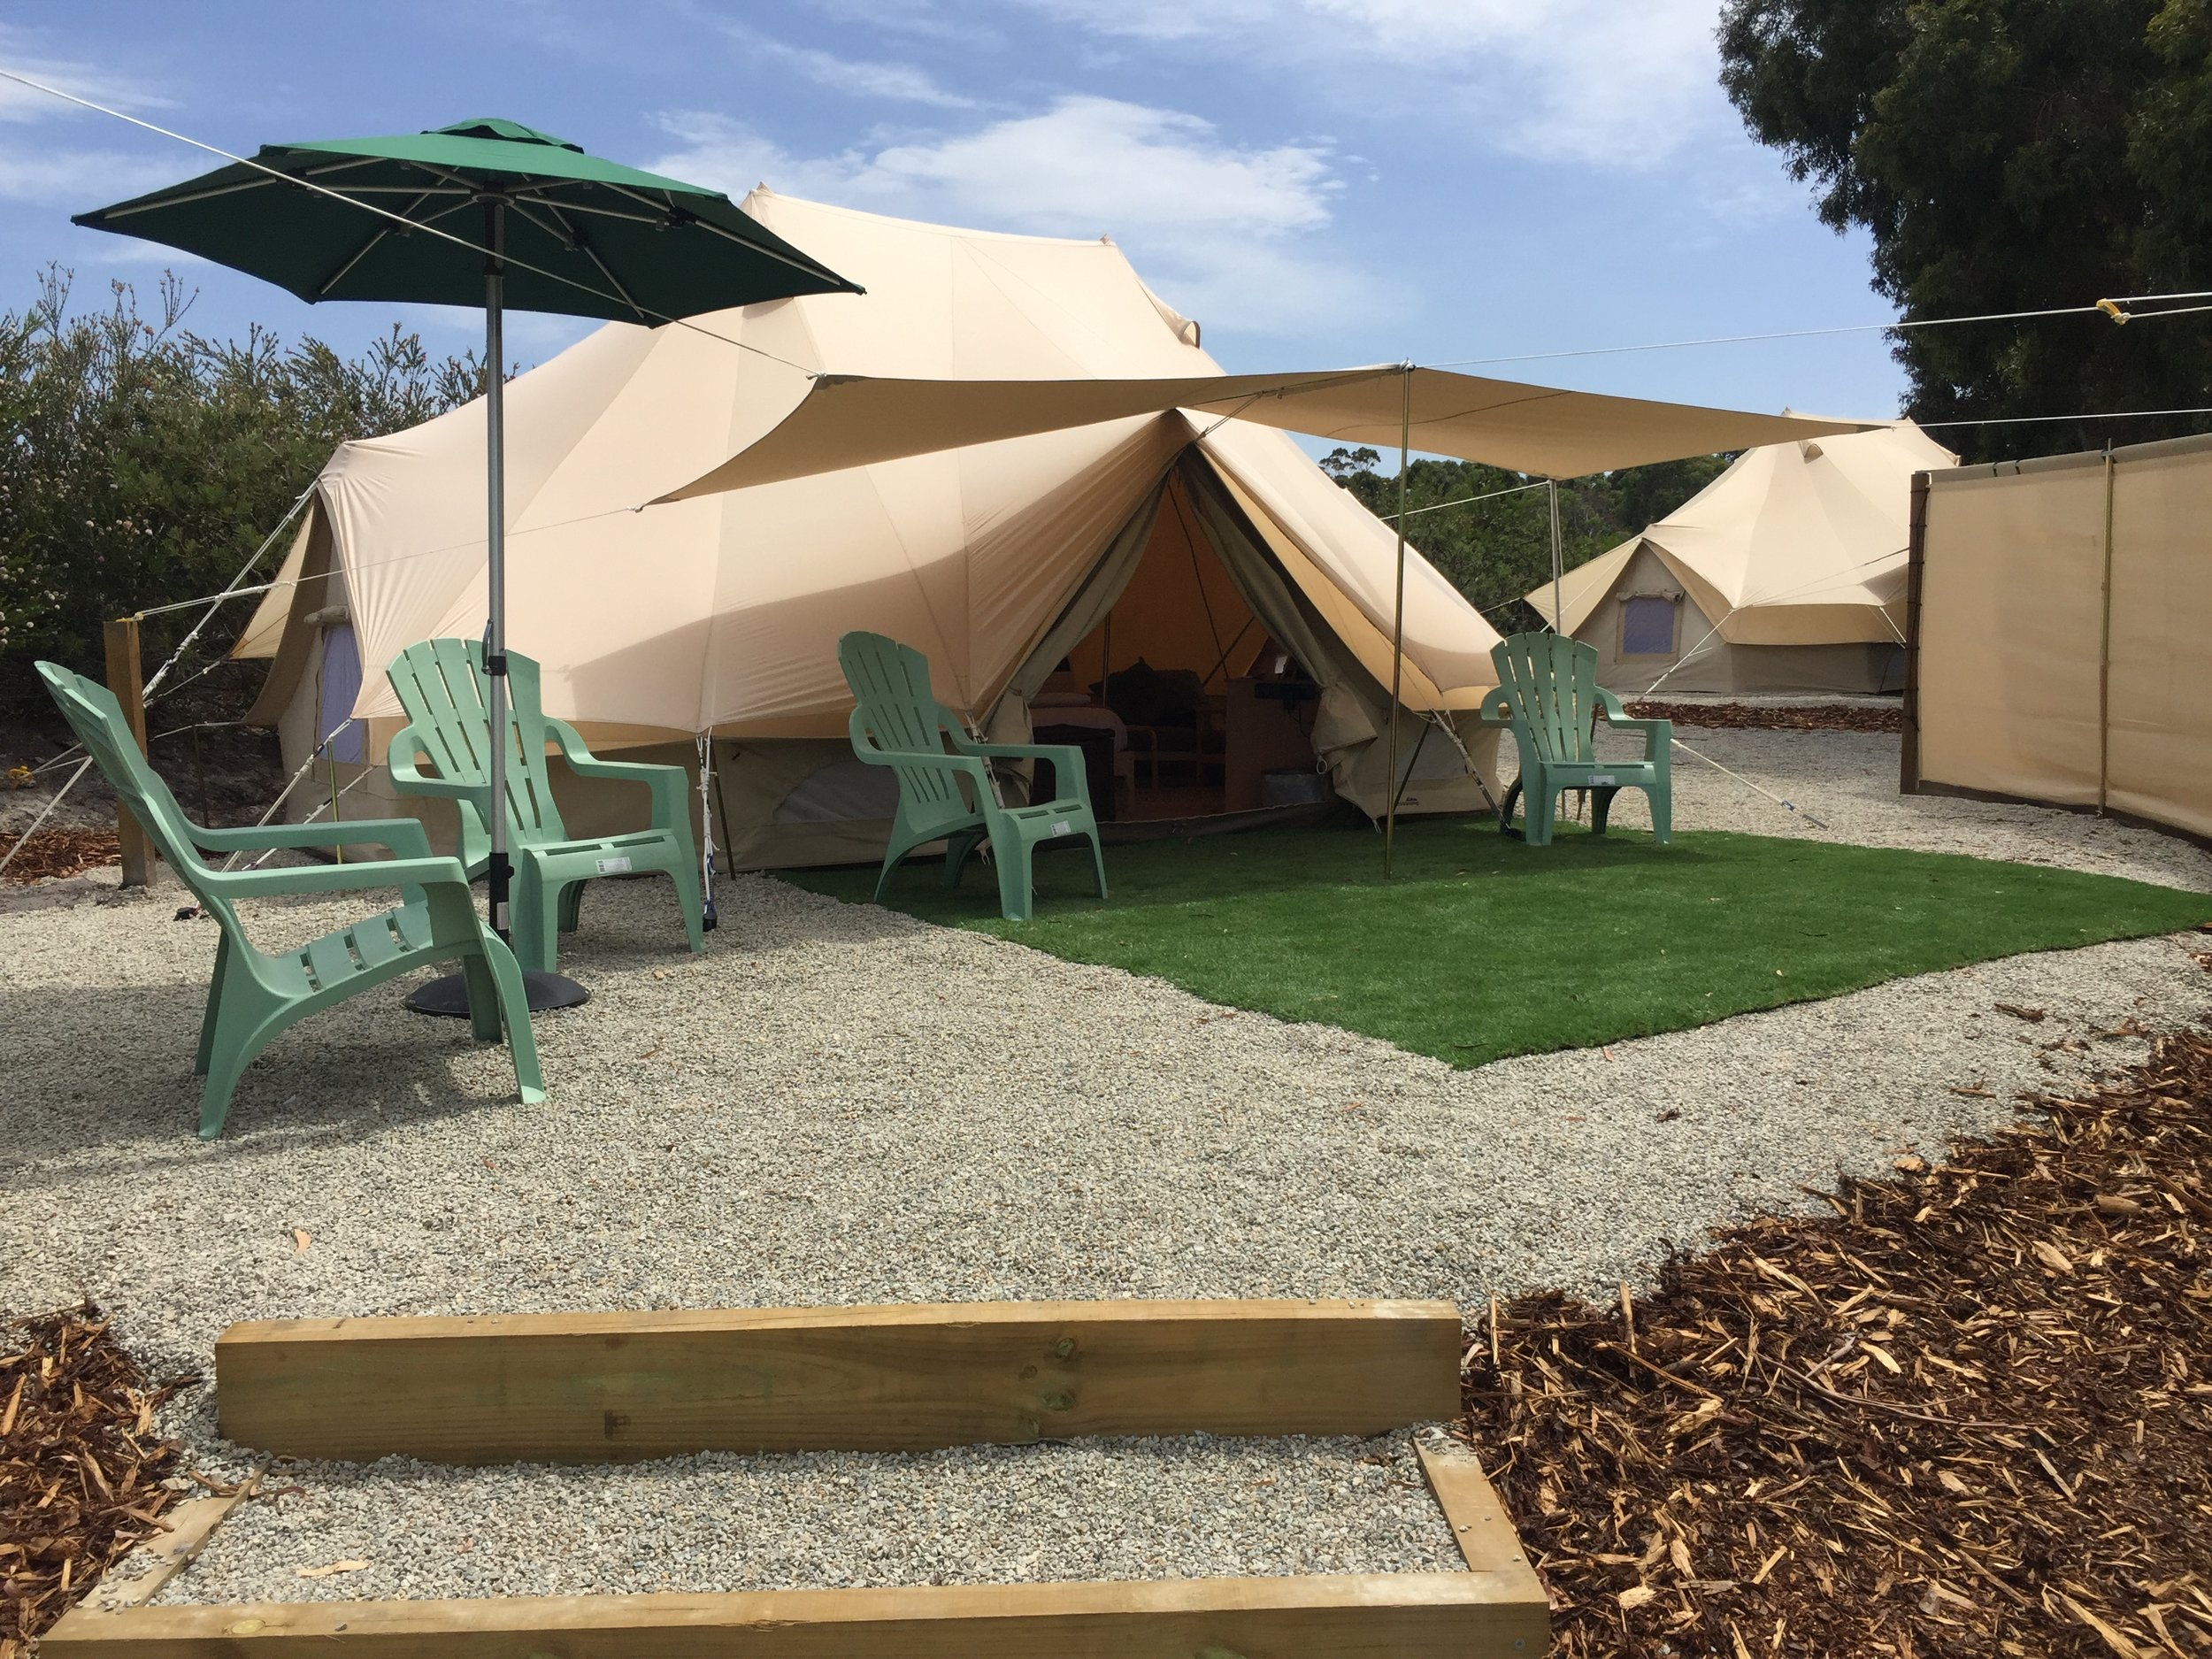 Family Glamping - Pack up the kids and bring them on a wonderful family glamping experience. Our Bell tents are all about getting back to nature with a big dose of luxury thrown in.